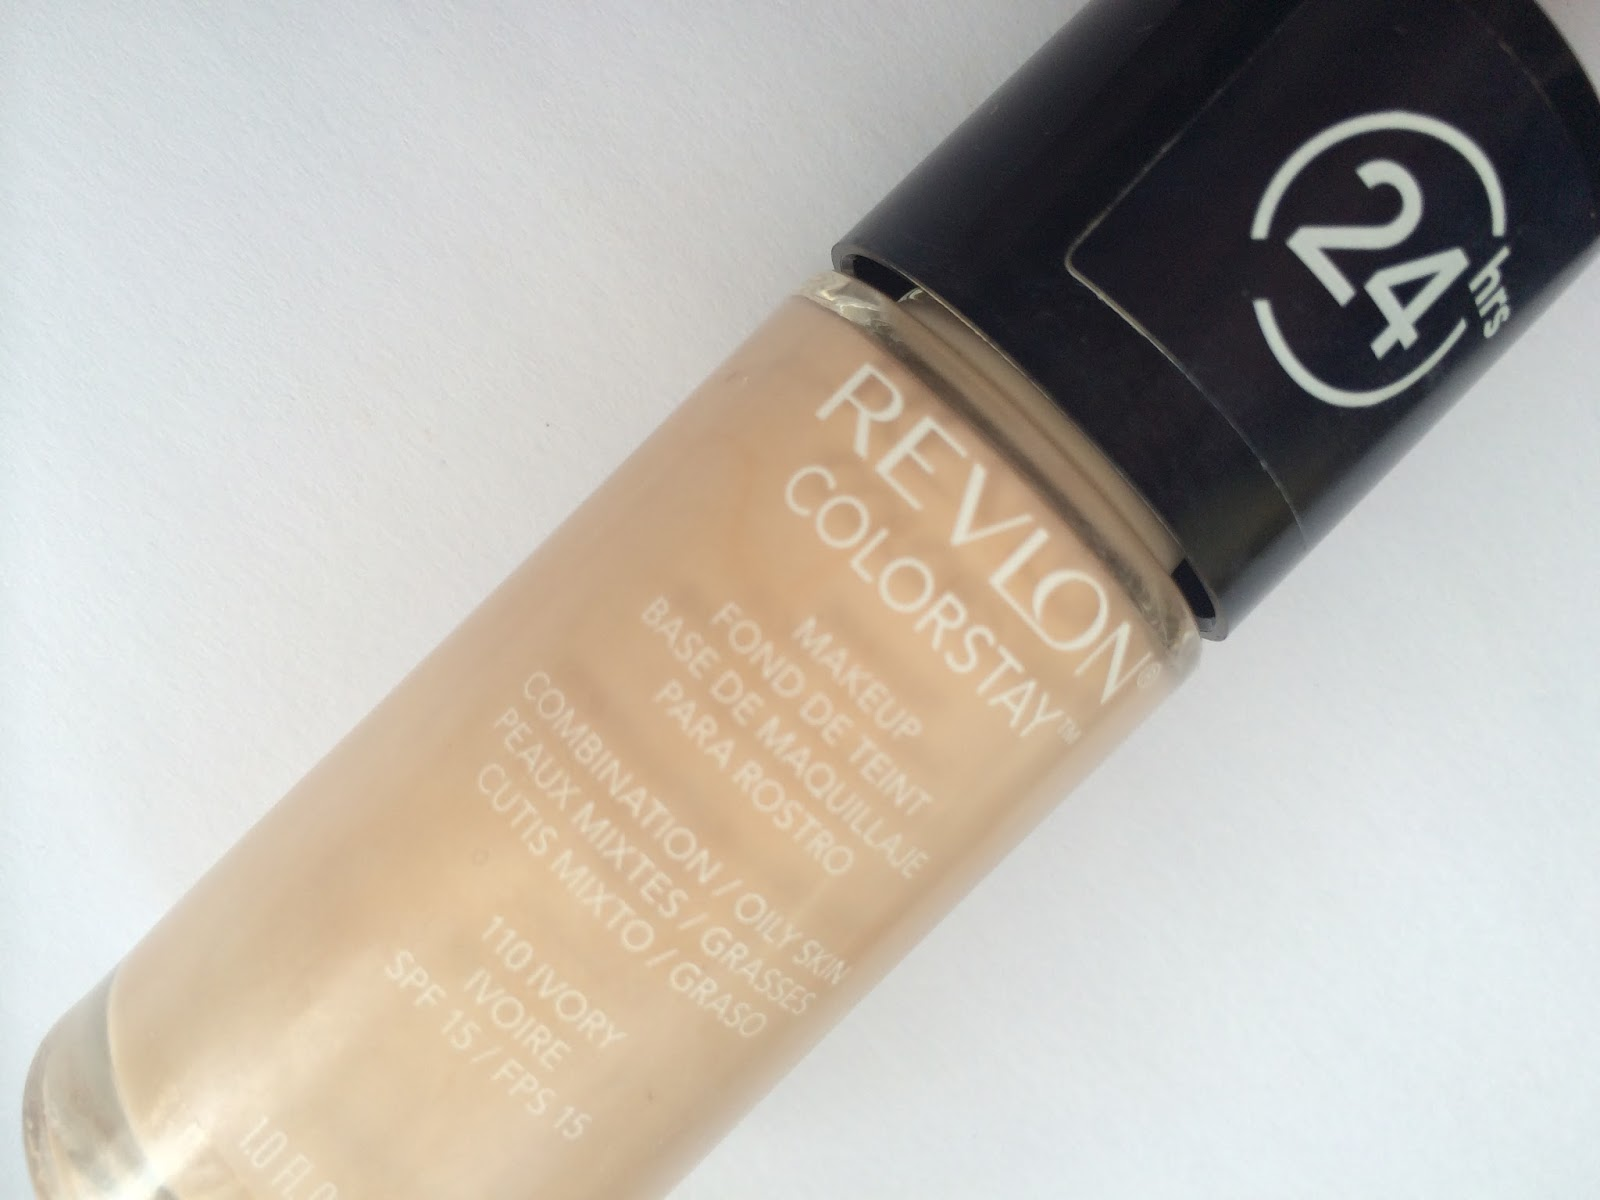 Revlon Colorstay Ivory Foundation